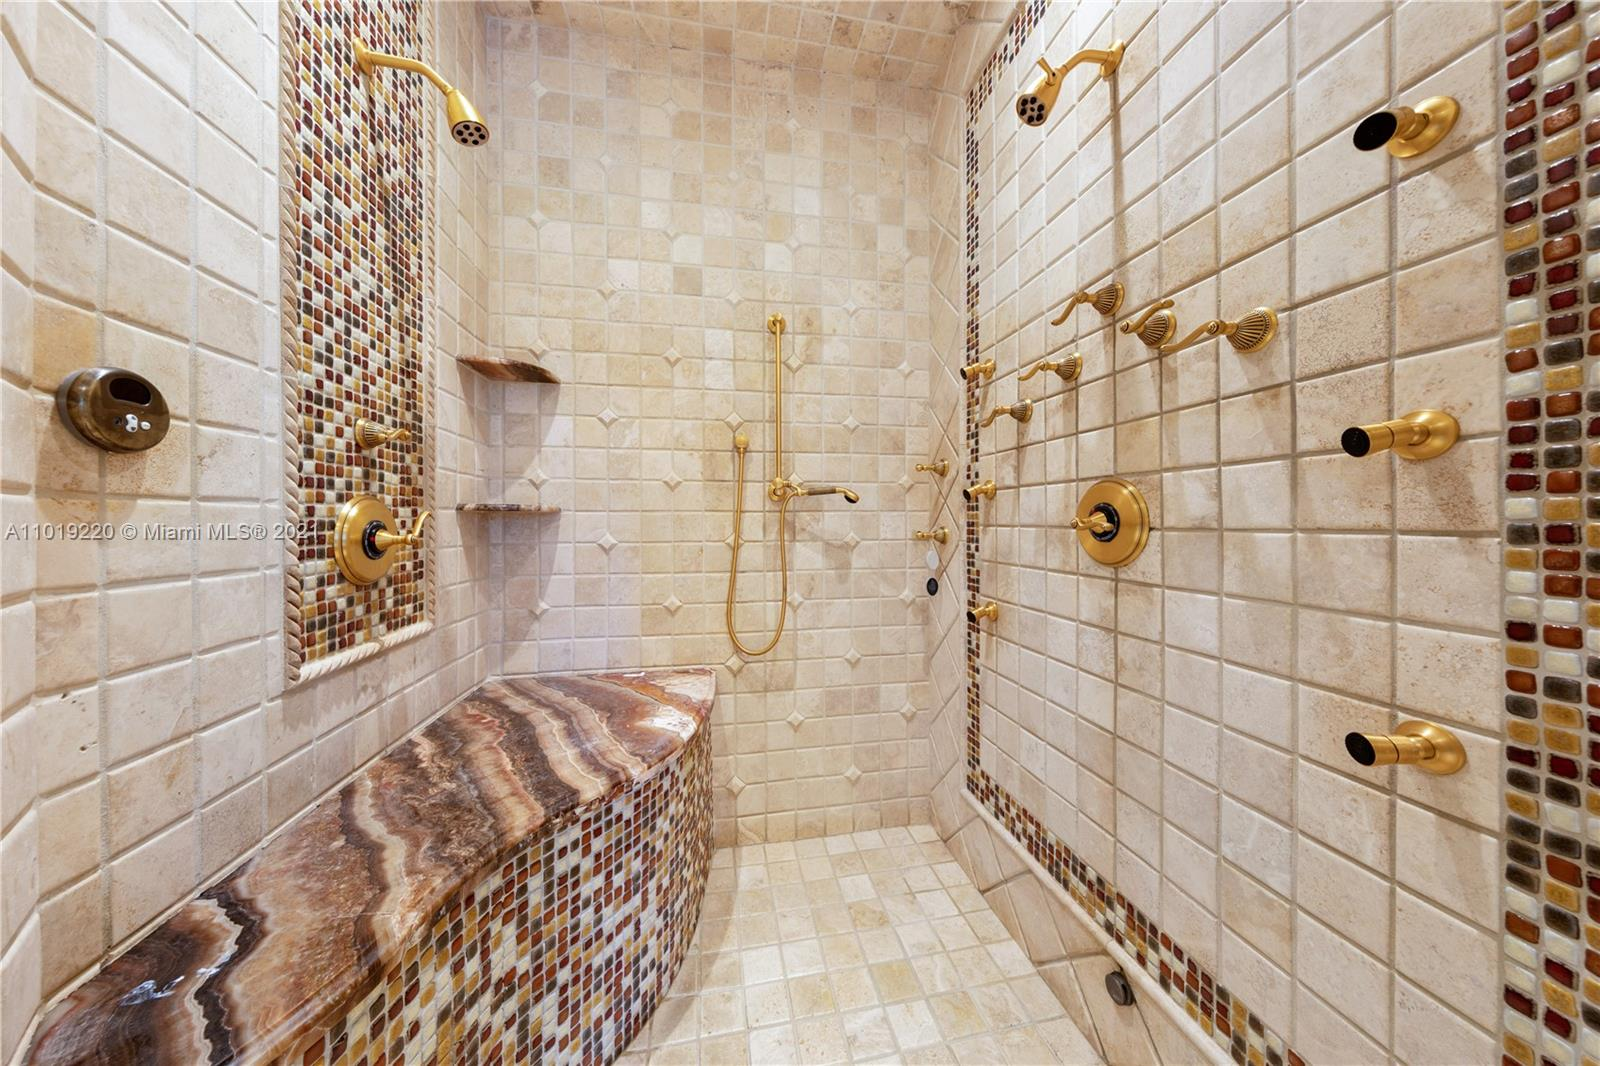 MASTER SHOWER HAS 2  SHOWER HEADS PLUS A RAIN HEAD, THE SHOWER HAS 6 JET SPRAYS , A HAND HELD AND A STEAM SHOWER.